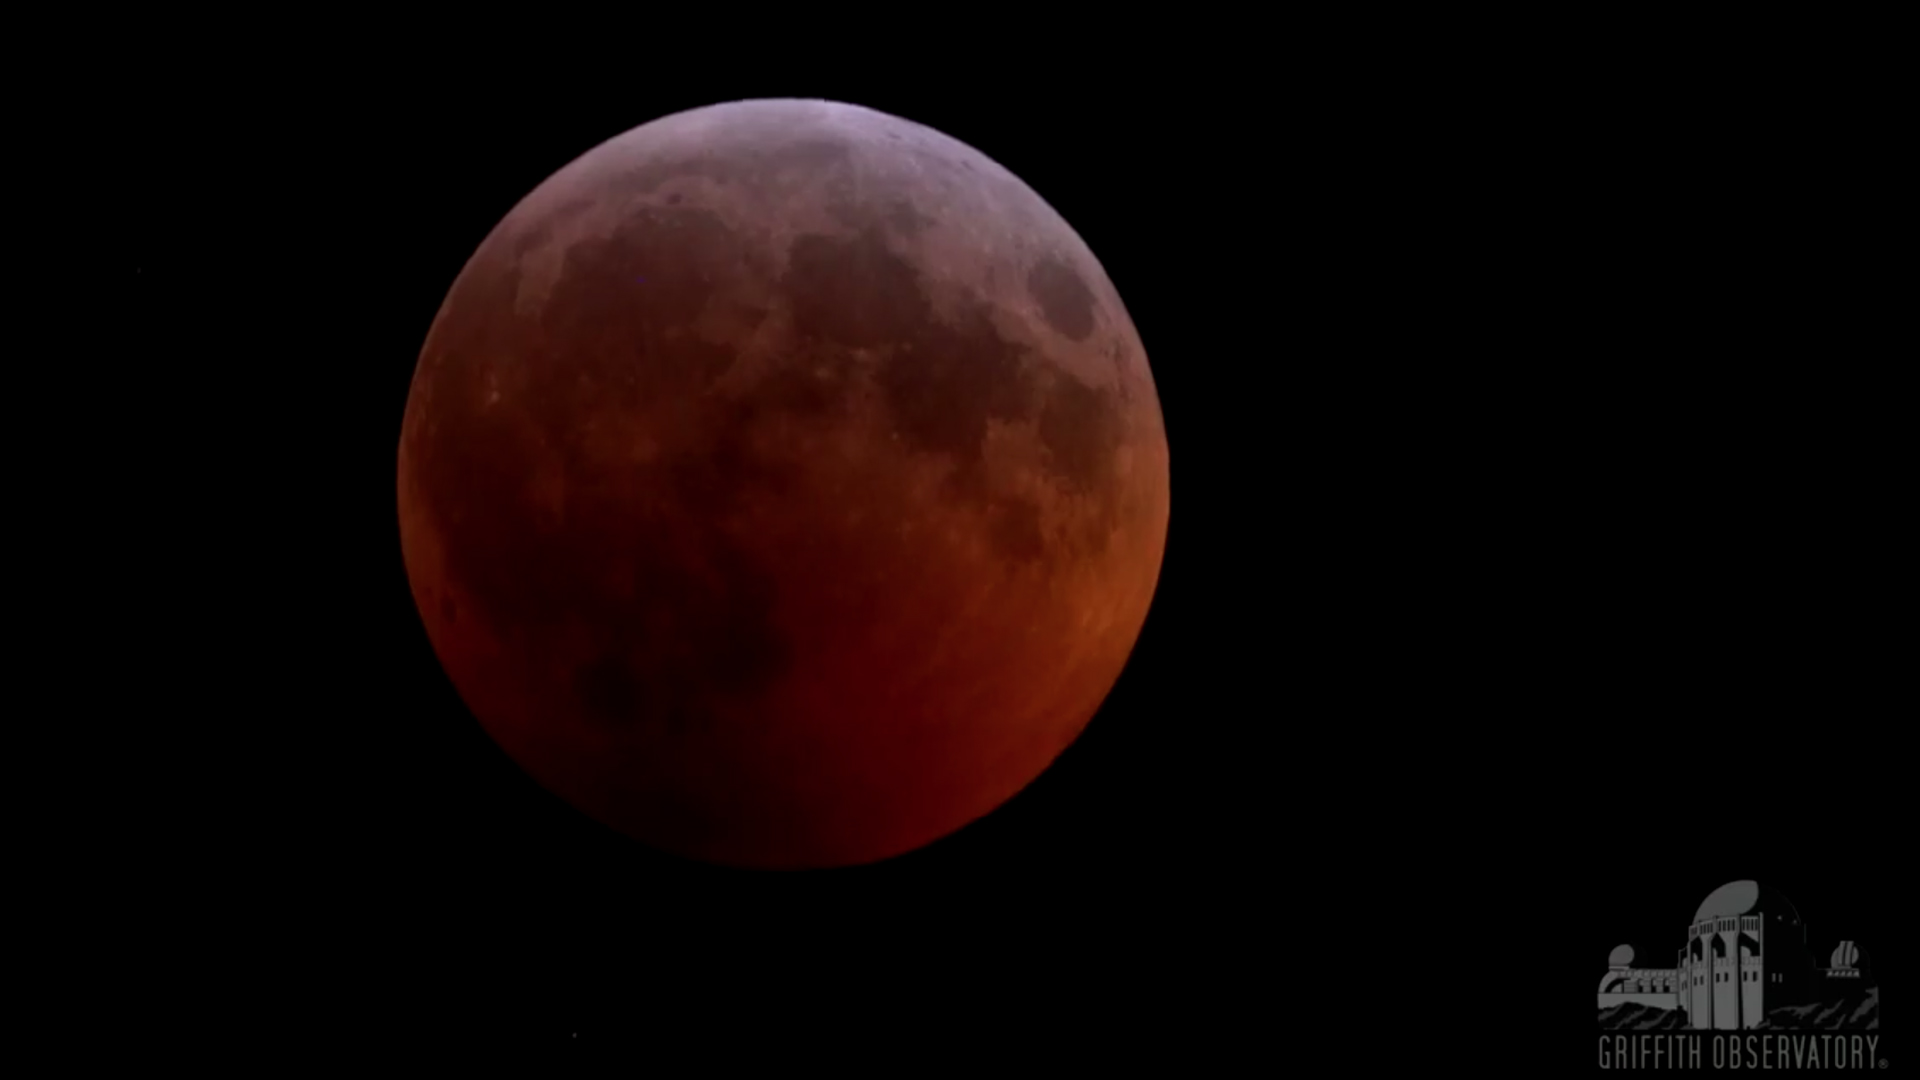 A total lunar eclipse, coinciding with a super blood wolf moon, on Jan. 20, 2019. (Credit: Griffith Observatory)